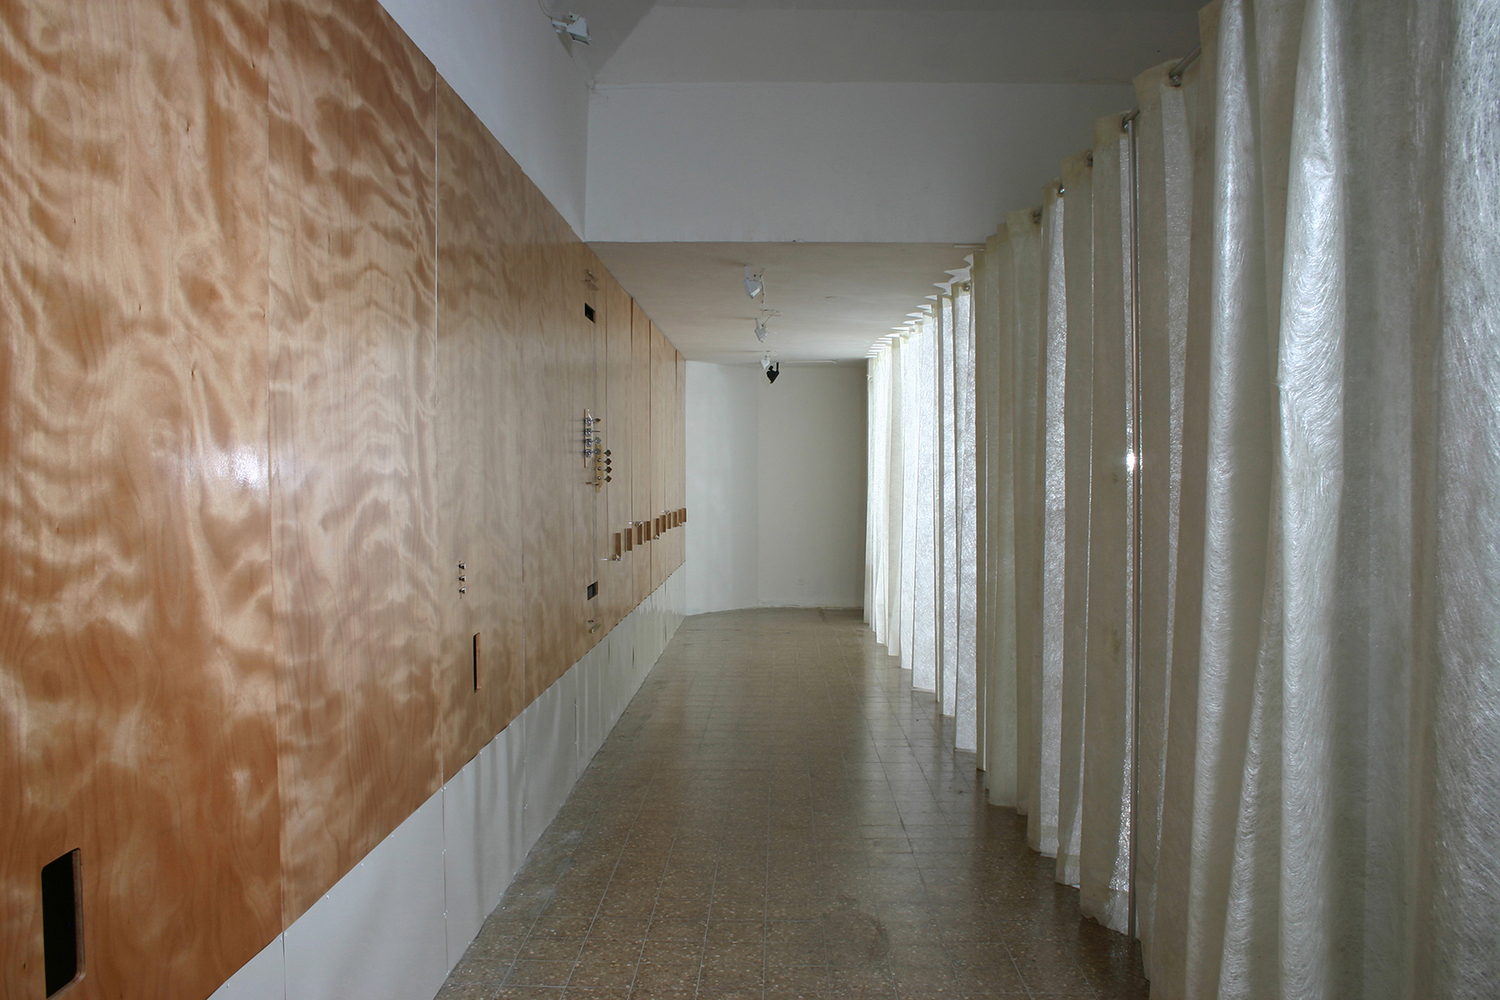 Untitled (String Wall) , 2004, Site-specific installation, Wood, strings, guitar tuners, brass, fiber glass mesh, Dimensions variable